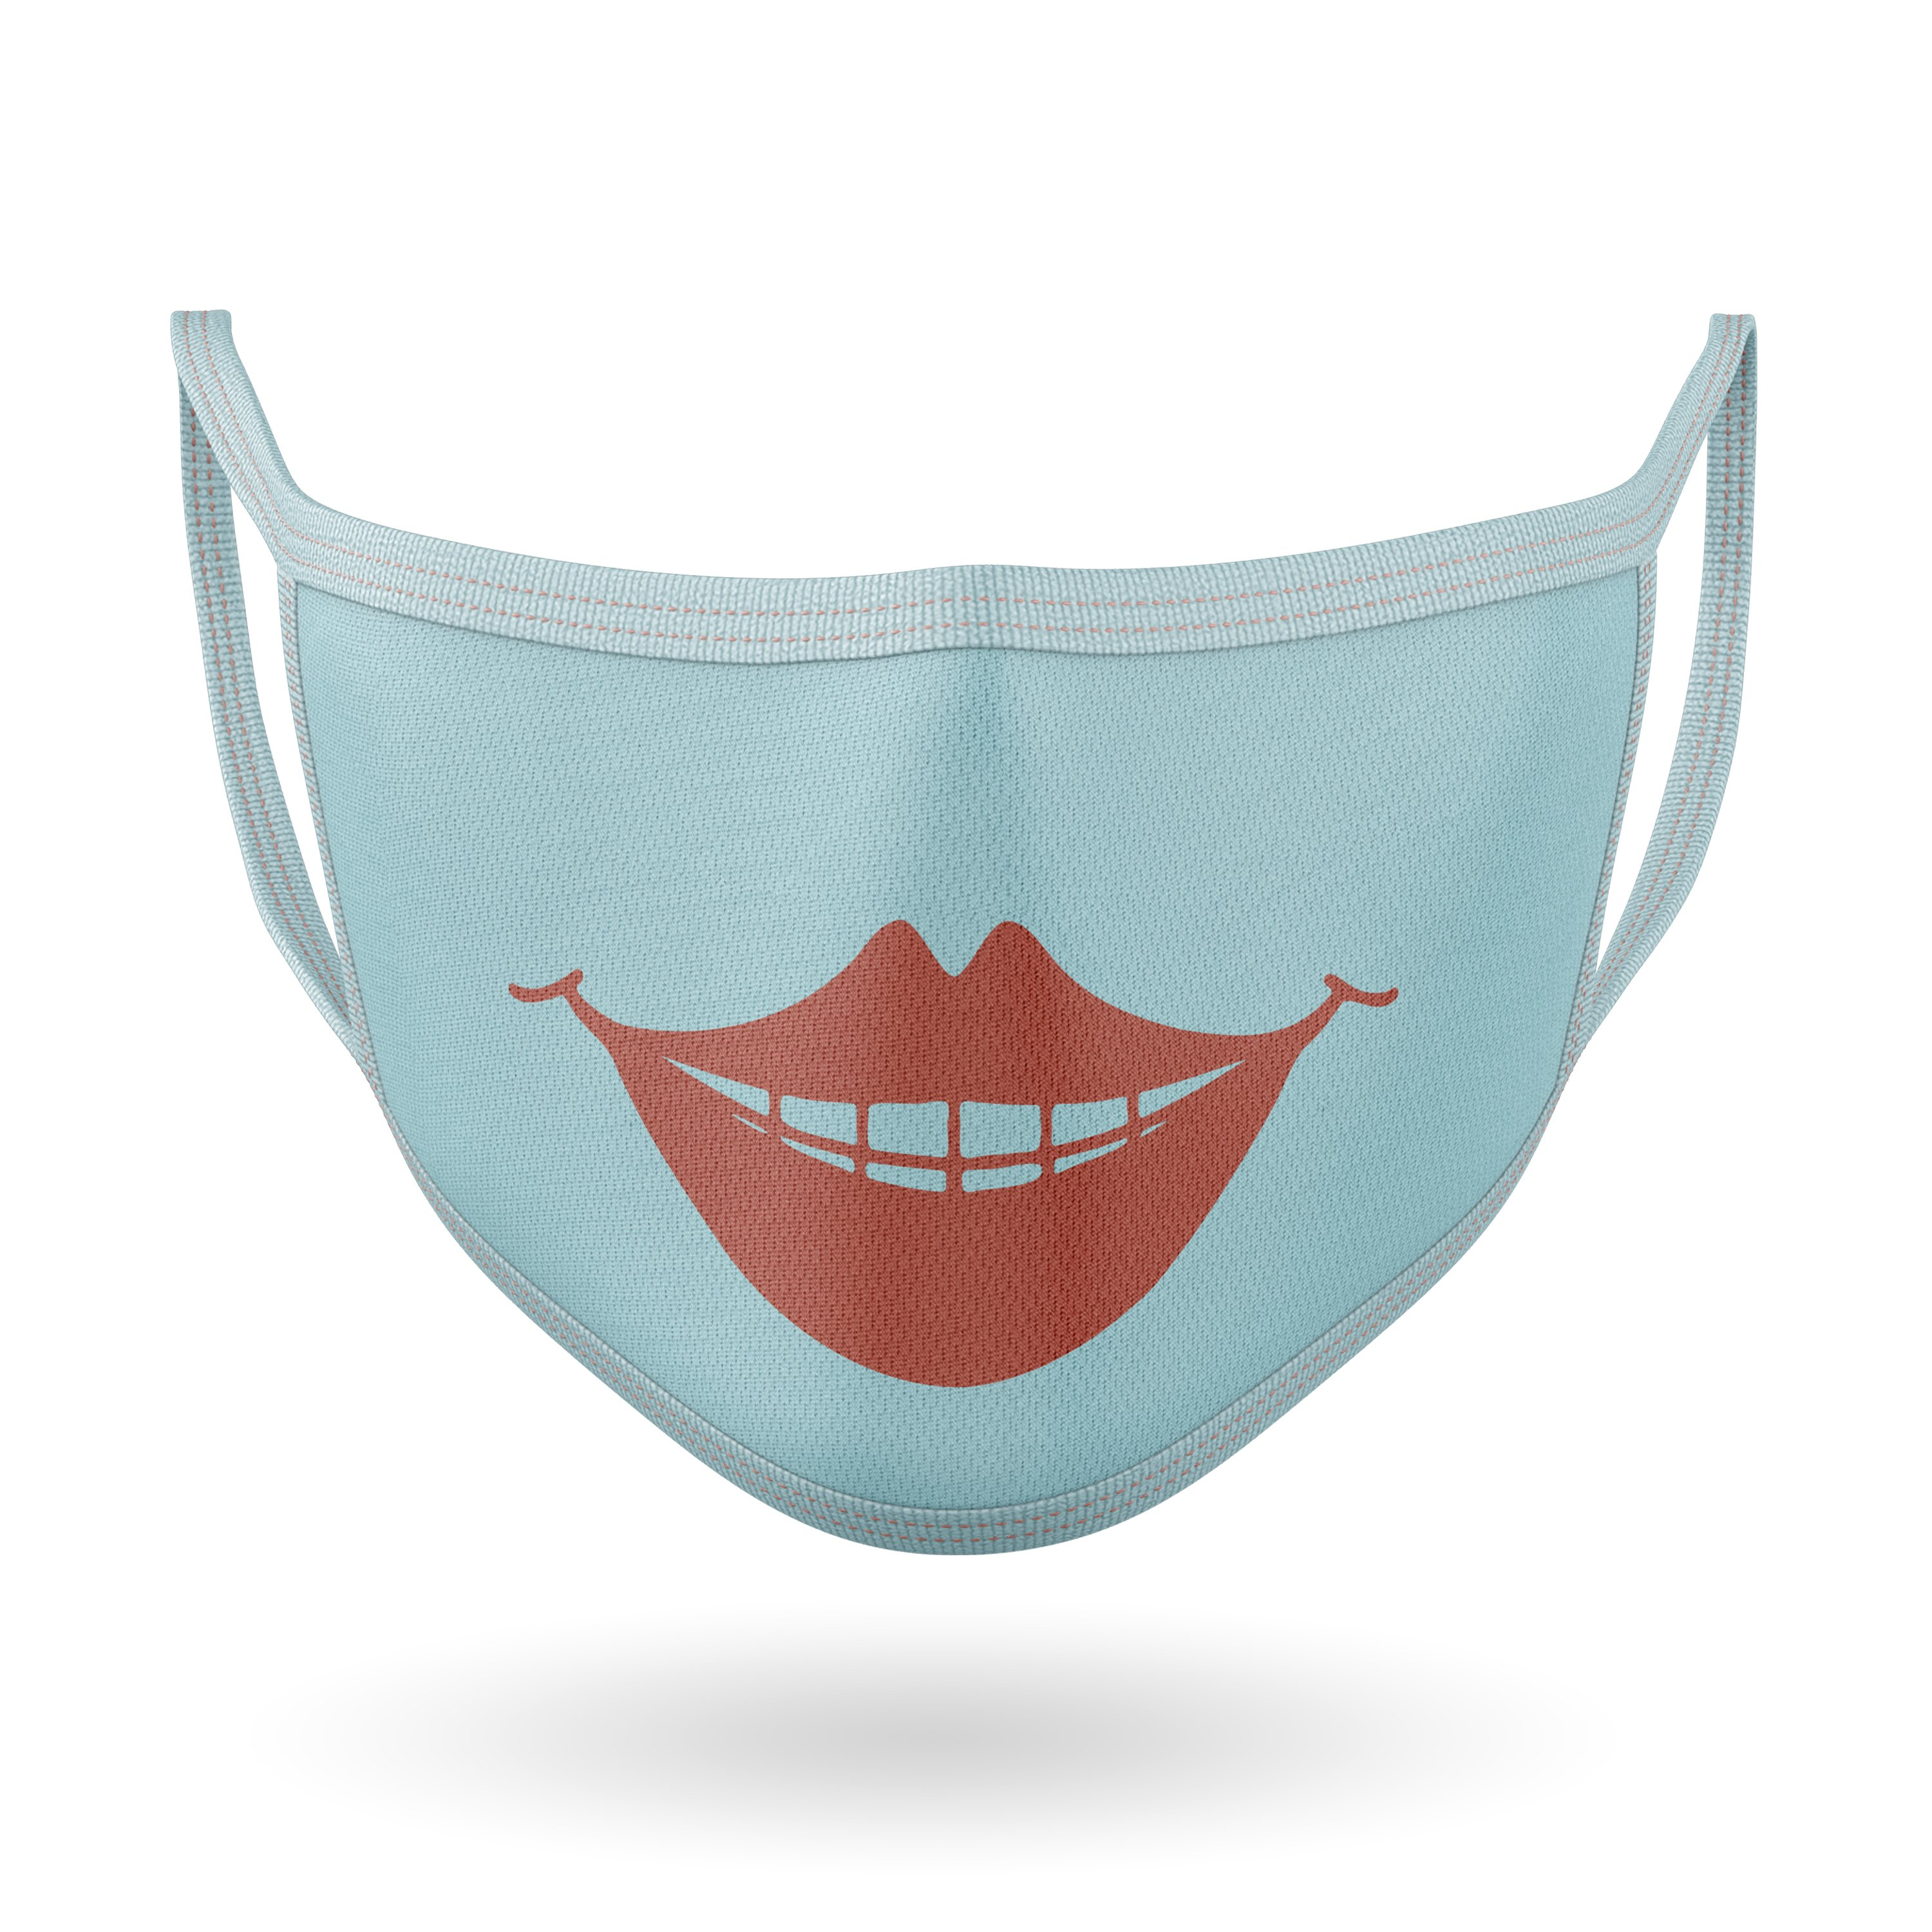 10 Funny Faces for Masks - SVG Cut Files example image 12